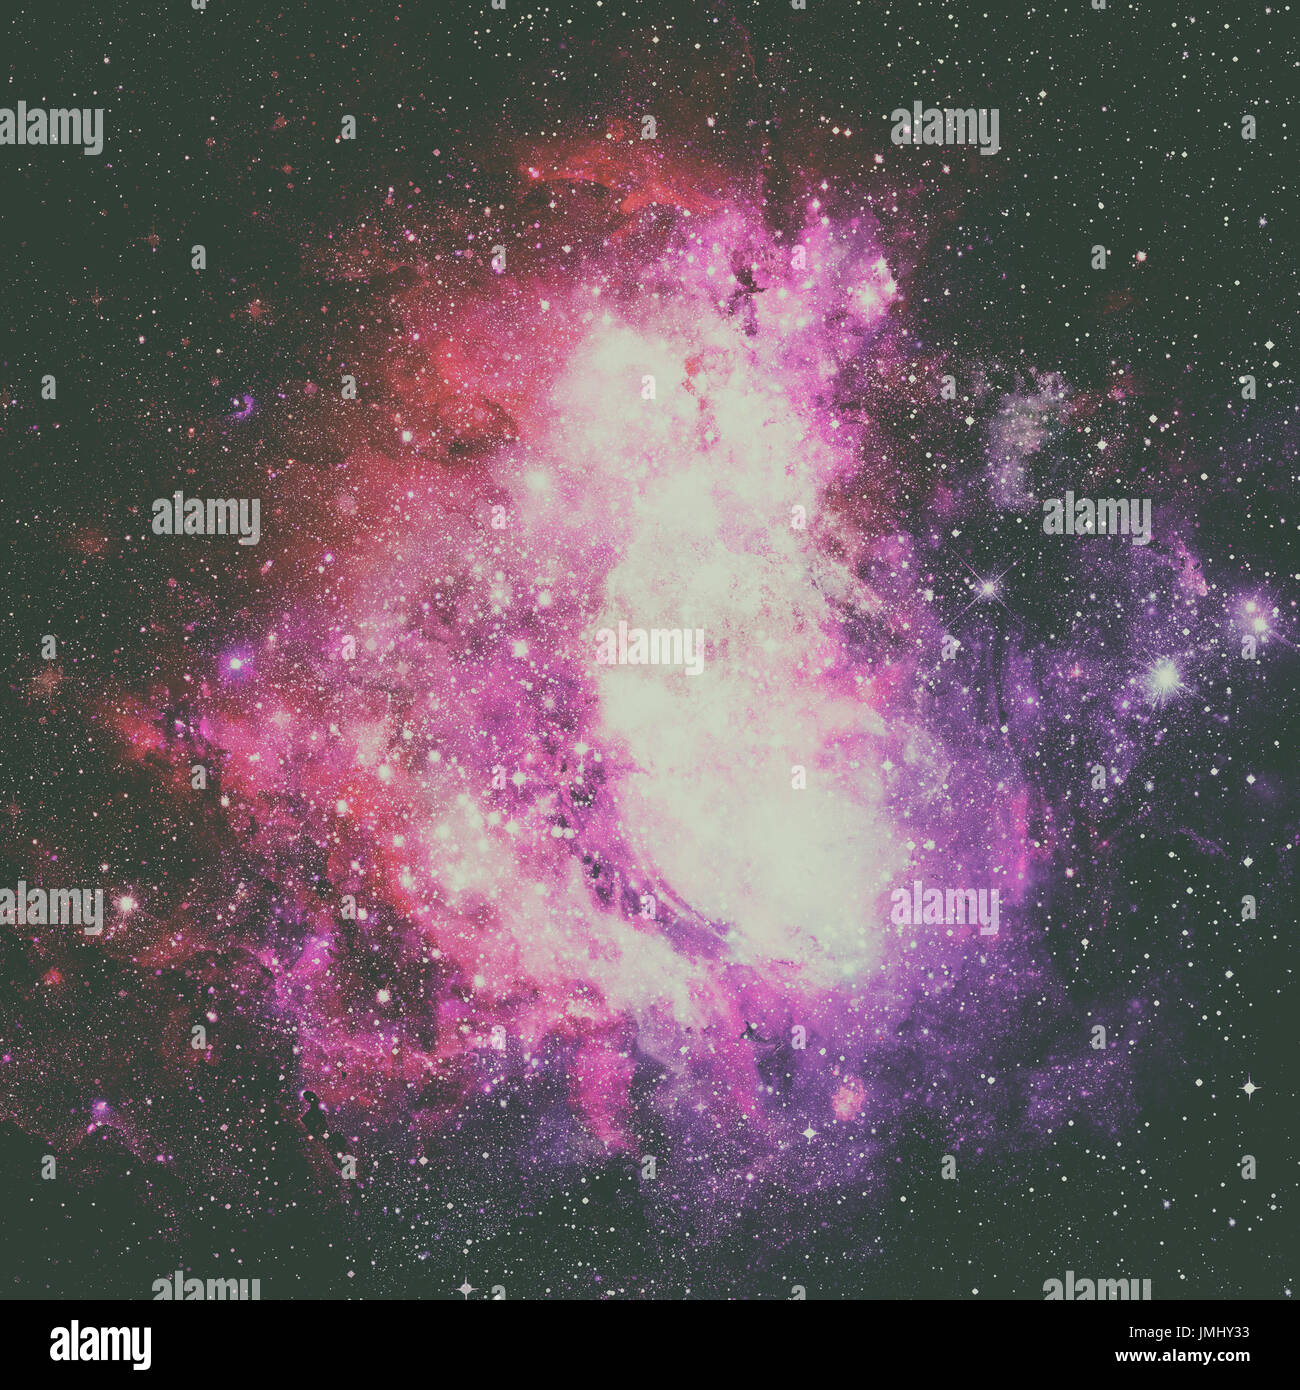 Beautiful nebula, stars and galaxies. Elements of this image furnished by NASA. - Stock Image